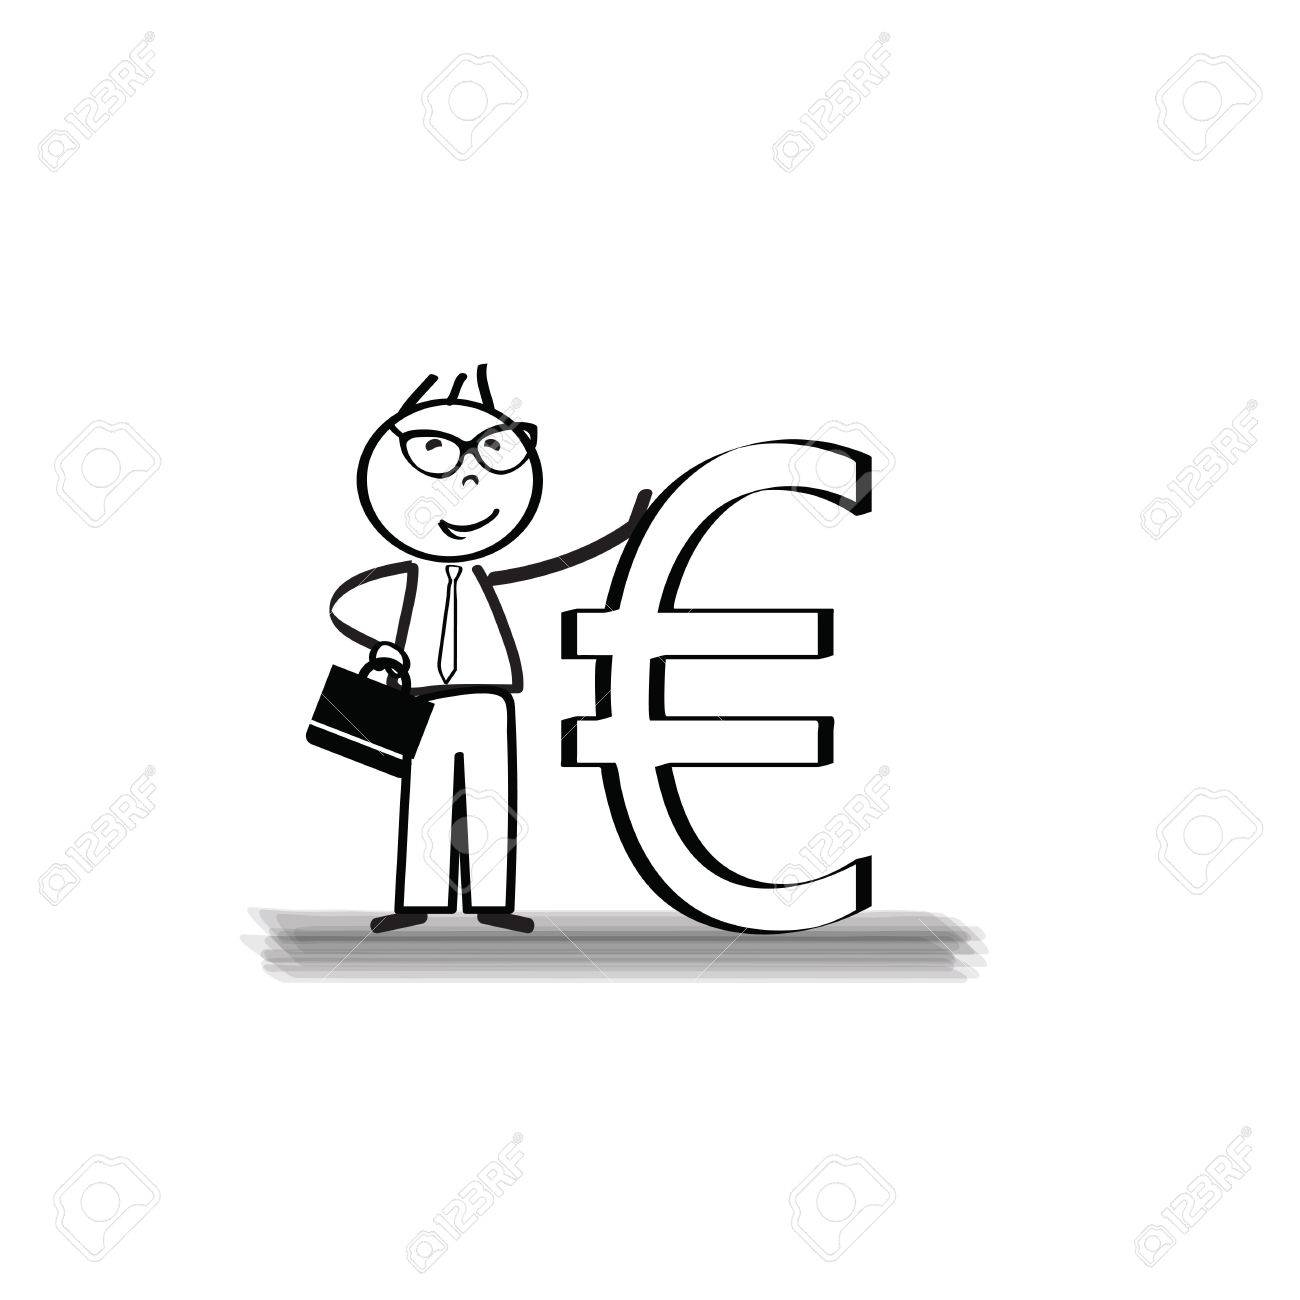 Young And Successful Businessman Cartoon With Euro Sign Royalty Free